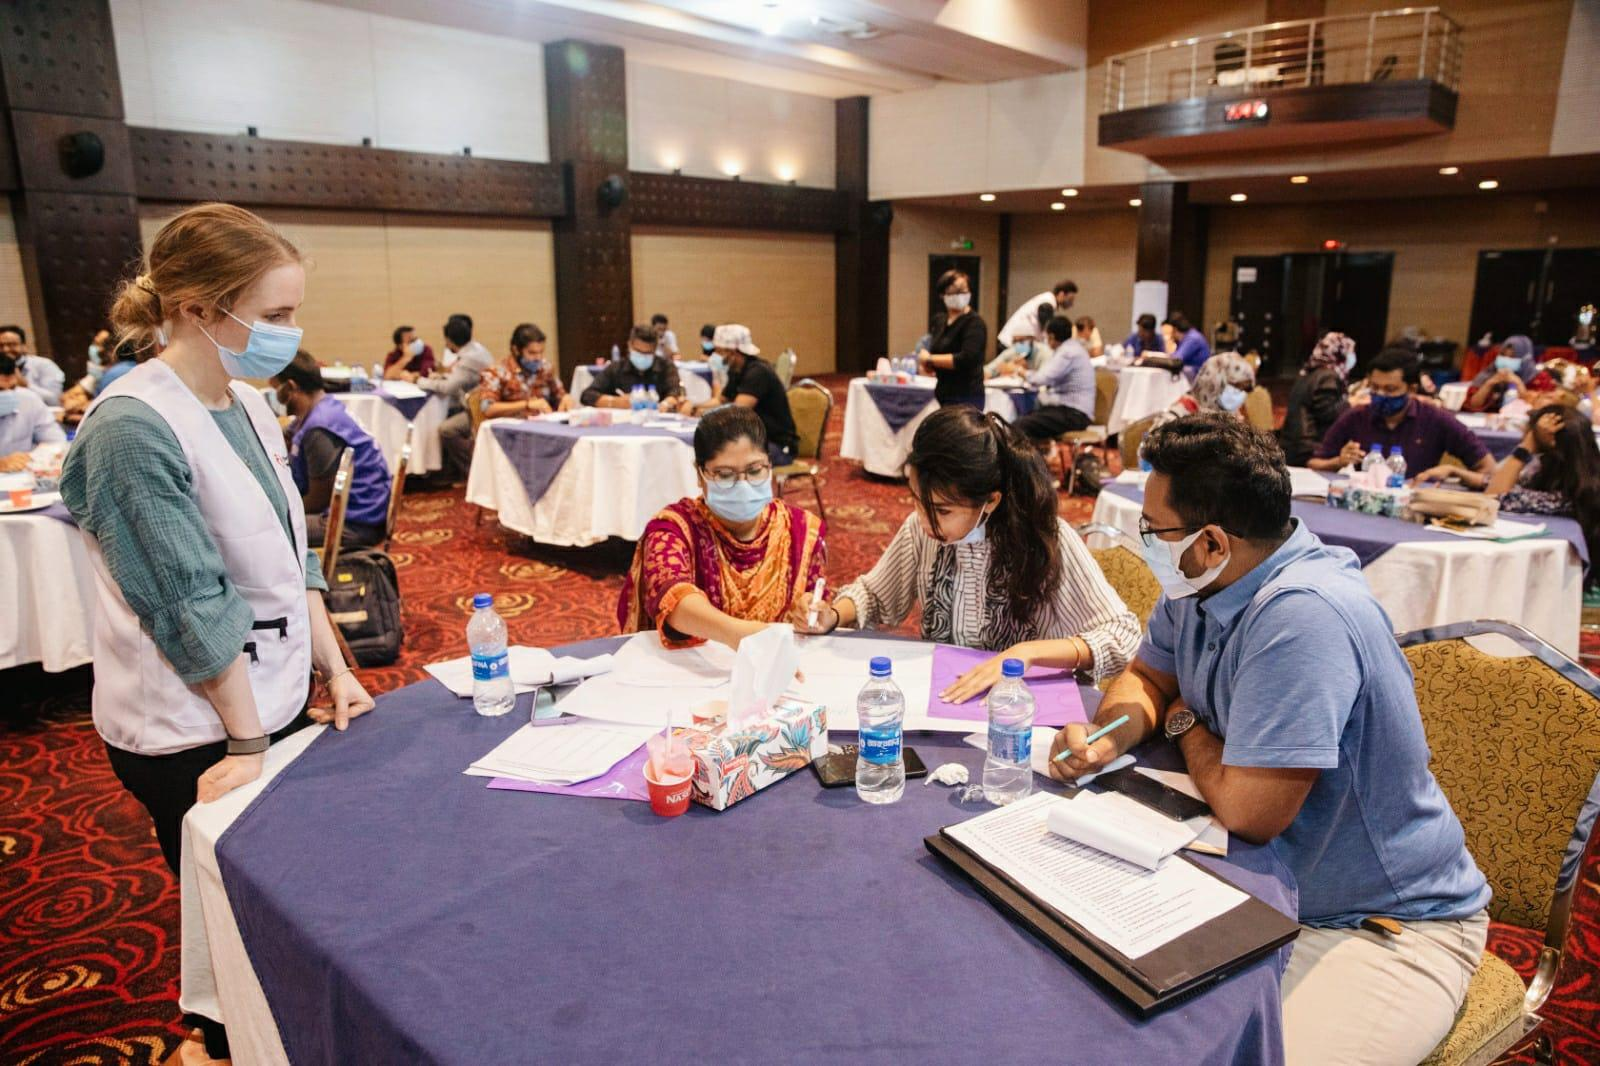 A group of clinical leaders and healthcare workers sitting at tables at a leadership & governance conference